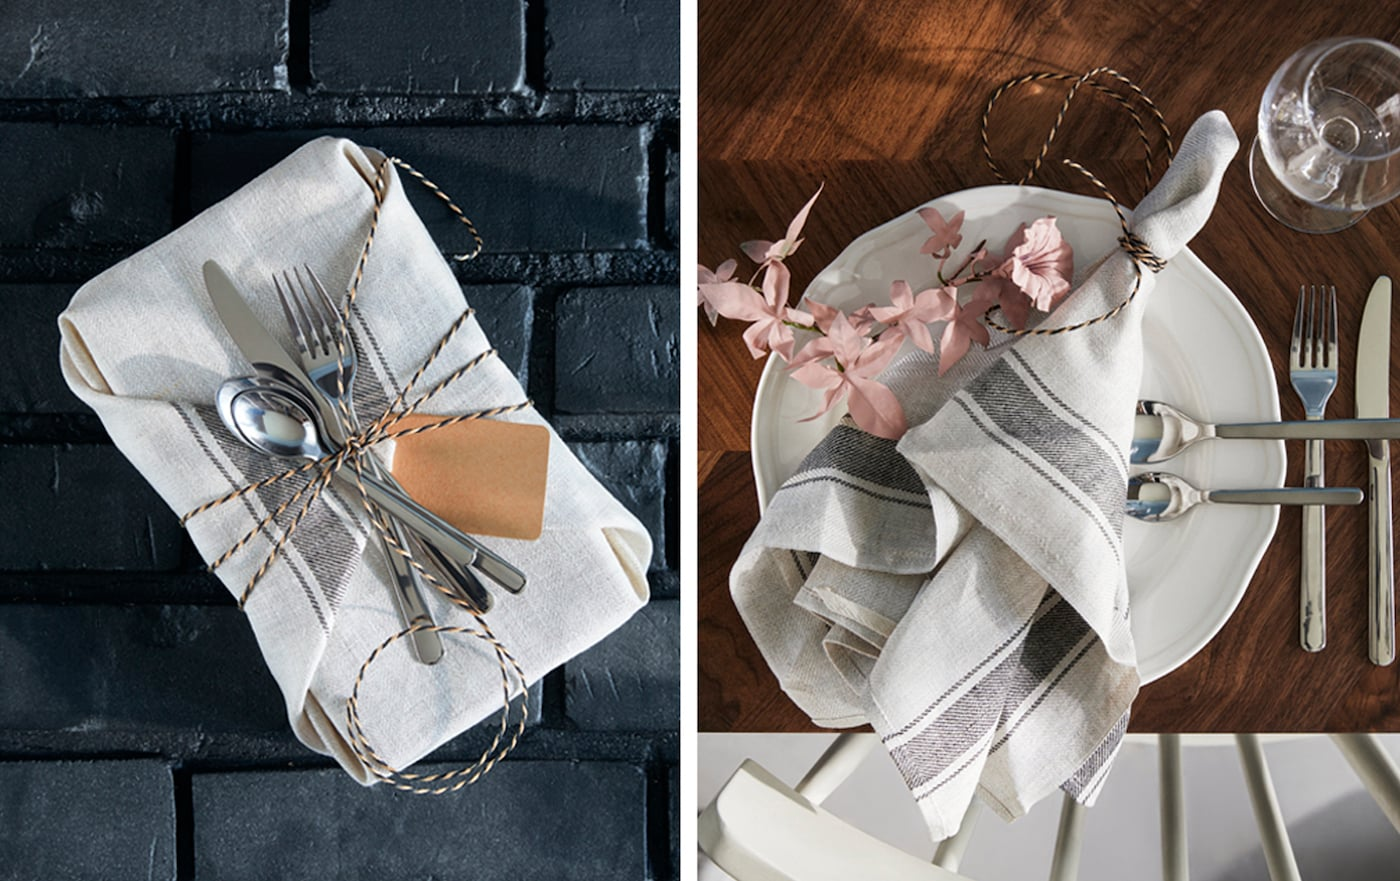 A basket wrapped as a gift in a tea towel beside a tea towel laying decoratively across a plate.